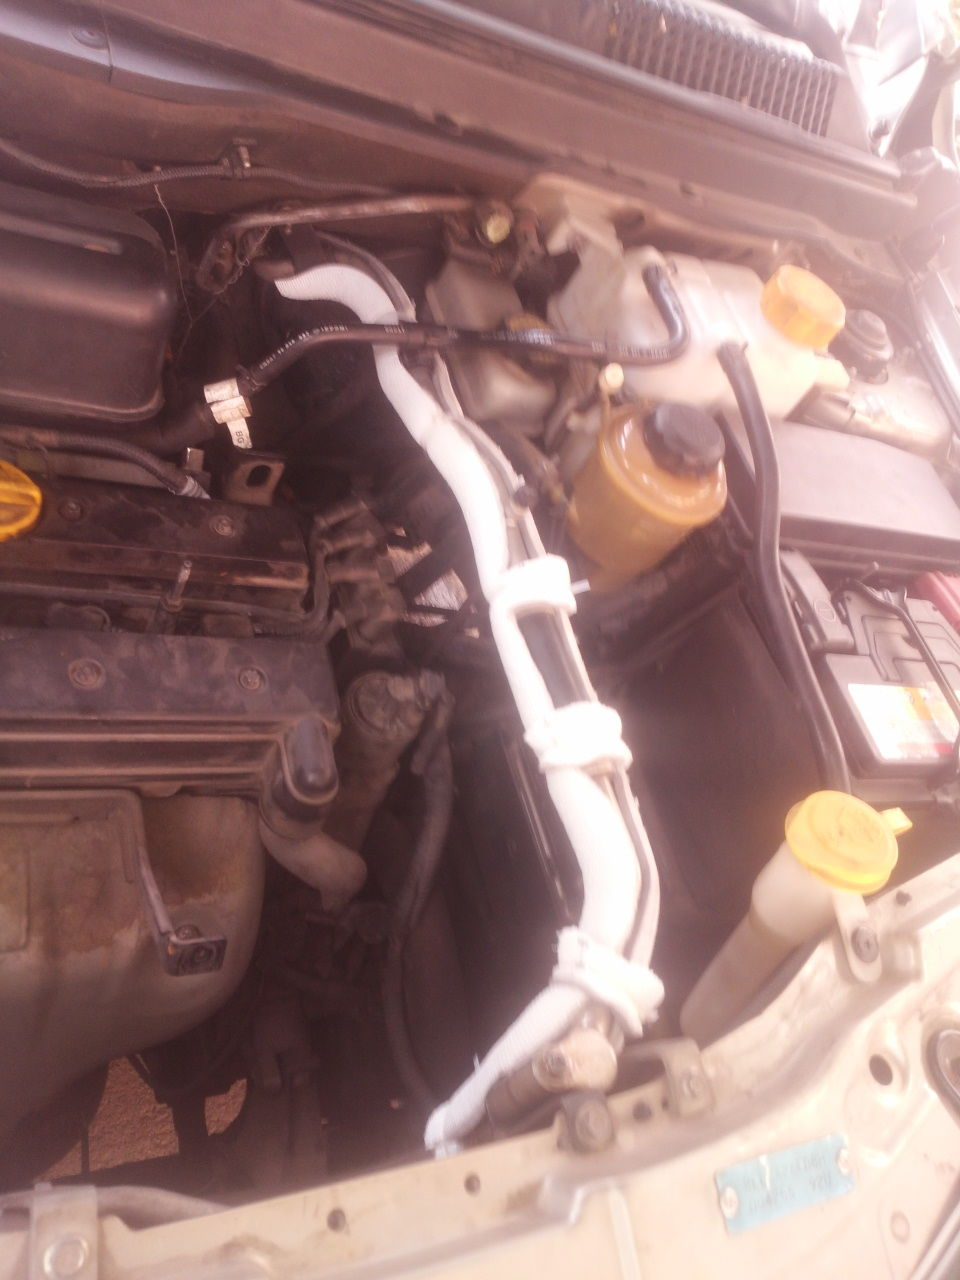 Accelerator Pedal Sensor Chevrolet Forum Chevy Enthusiasts Forums 2004 2500hd 6 1 Engine Aveo Diagram Just Cover A Haft Made Sure Water Go To Two Side And Dropped This Is Second Hand Car So I Dont Know If Its Wire Opened By Repairing Or Not